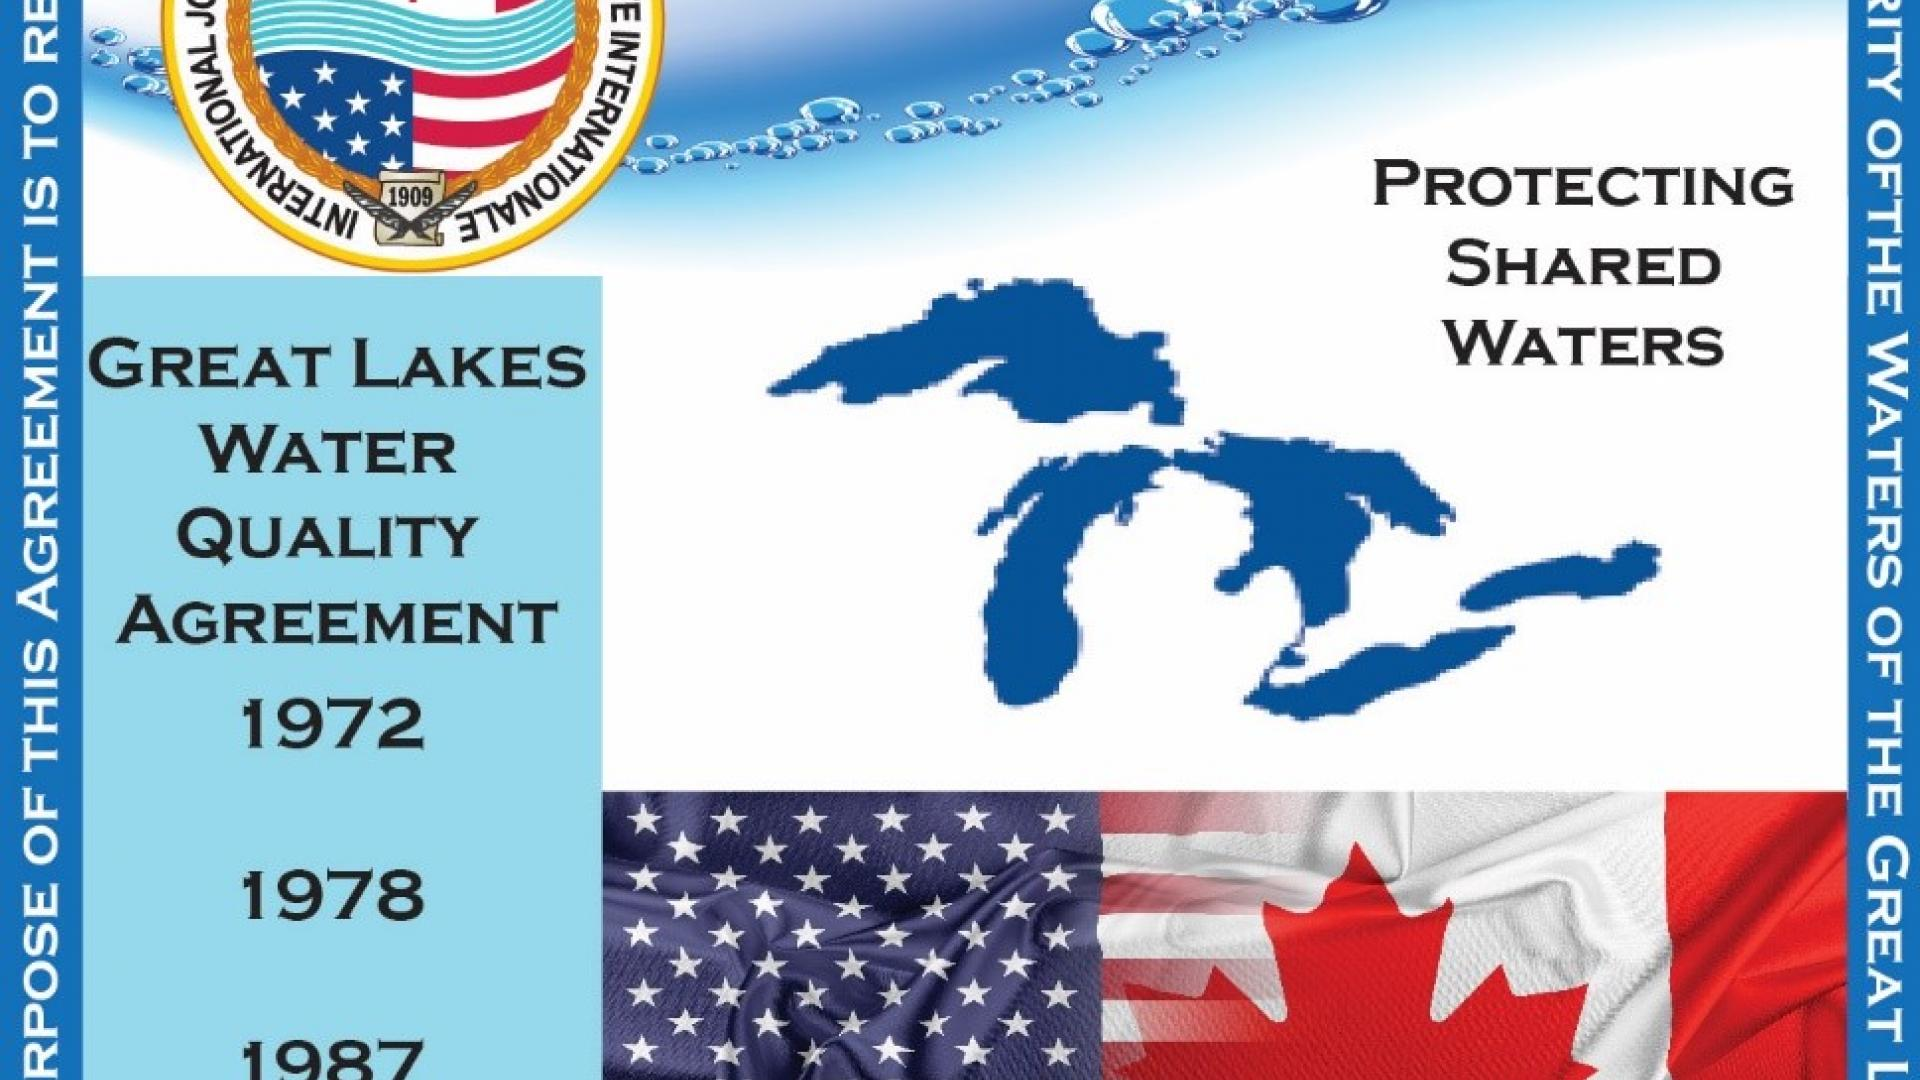 The Great Lakes Water Quality Agreement, signed in 1972, was most recently revised in 2012. Credit: Monique Myre